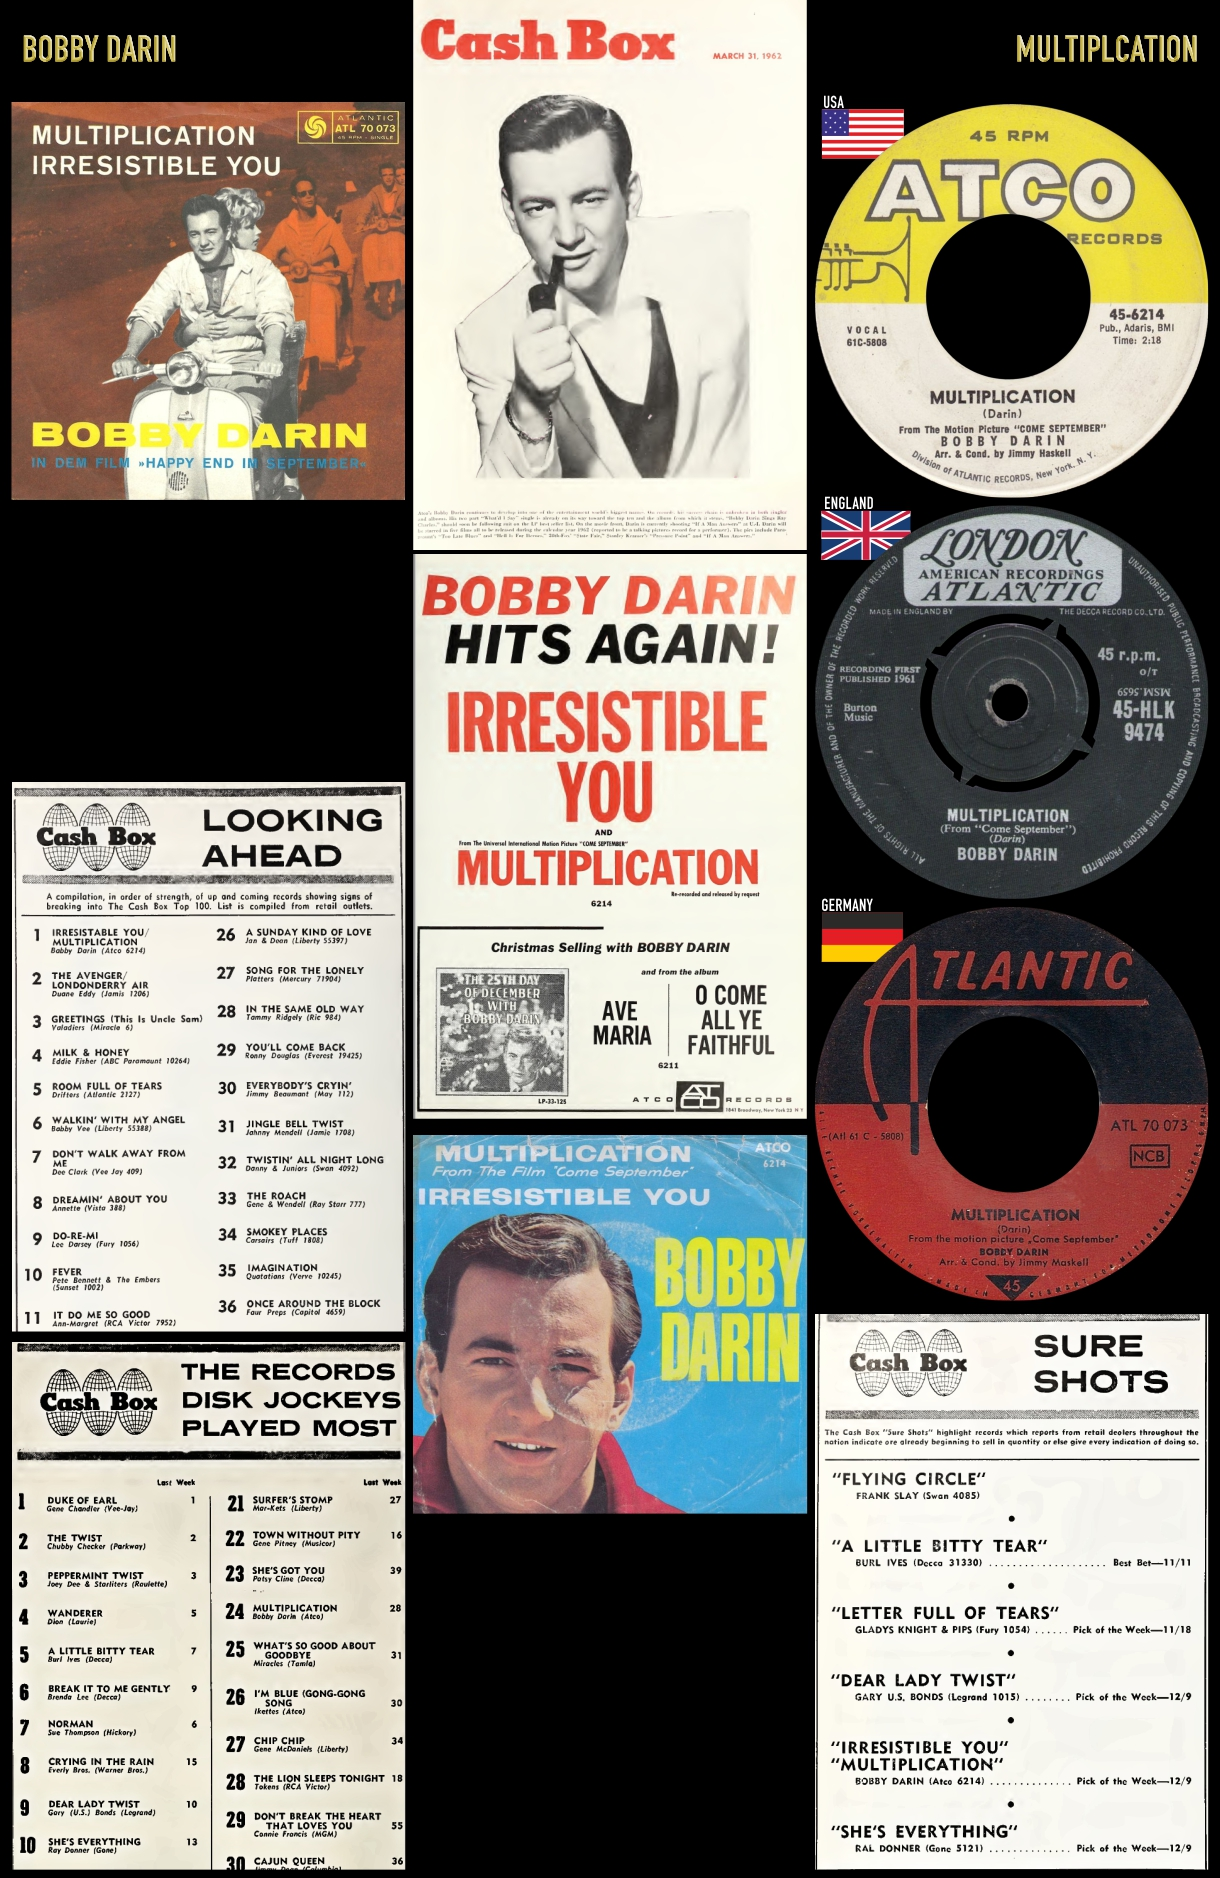 611216_Bobby Darin_Multiplication